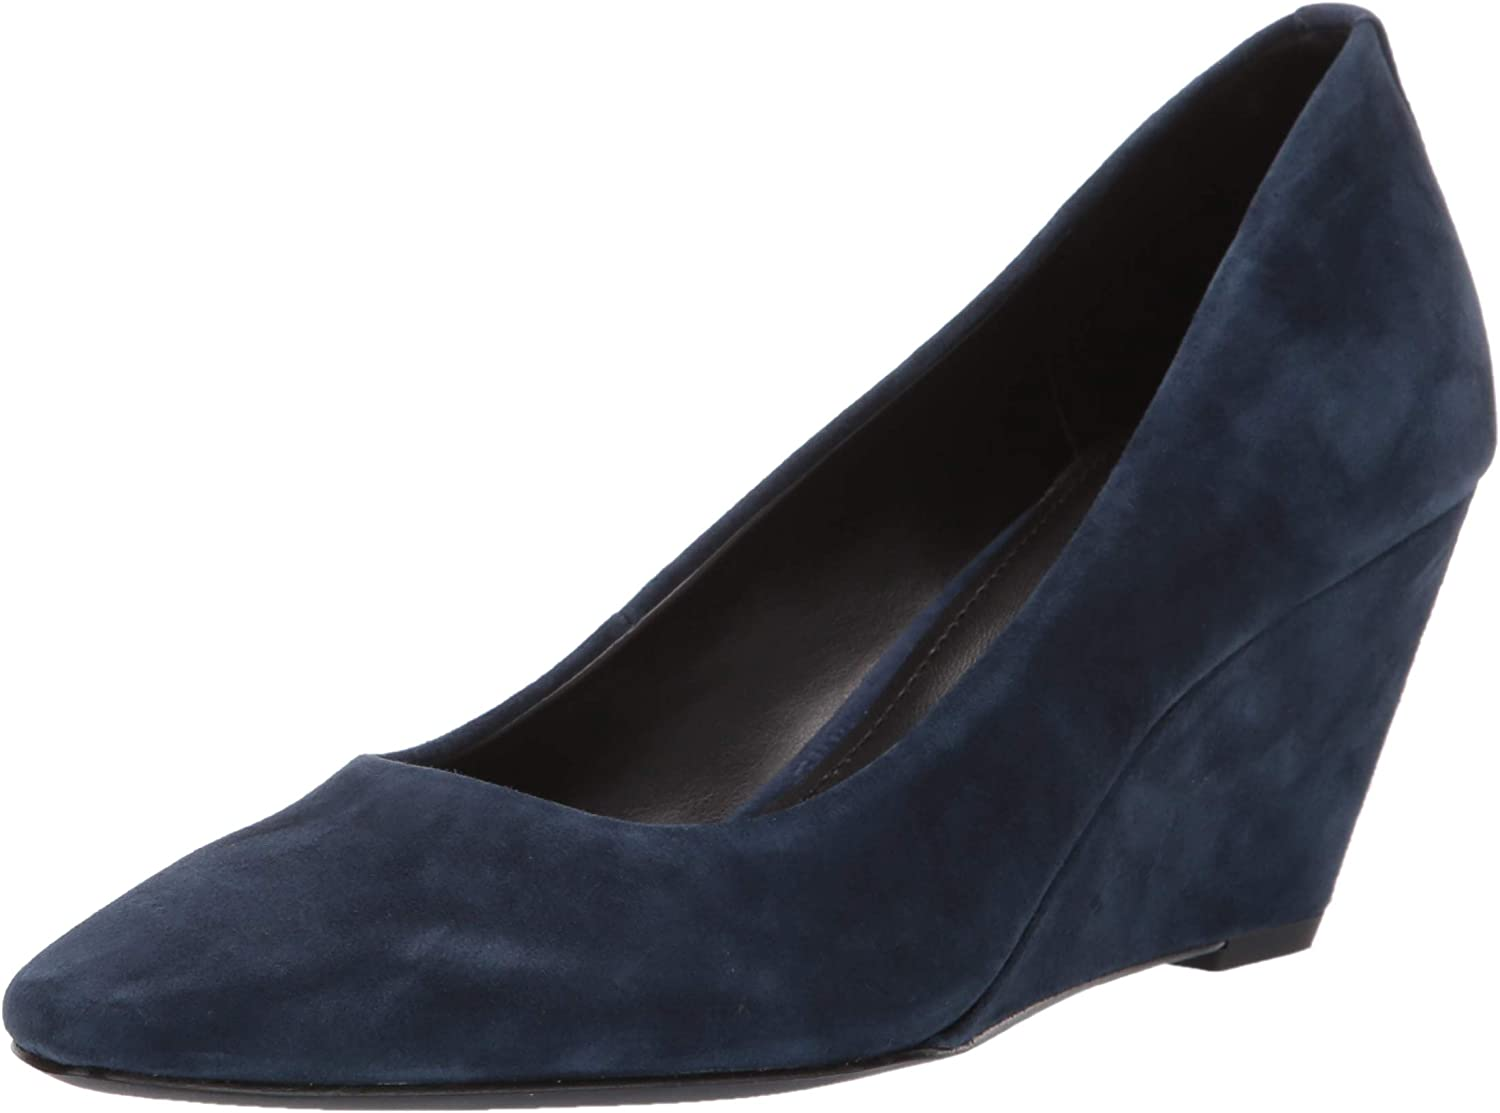 Donald J Pliner Womens Jeri-ks Pump